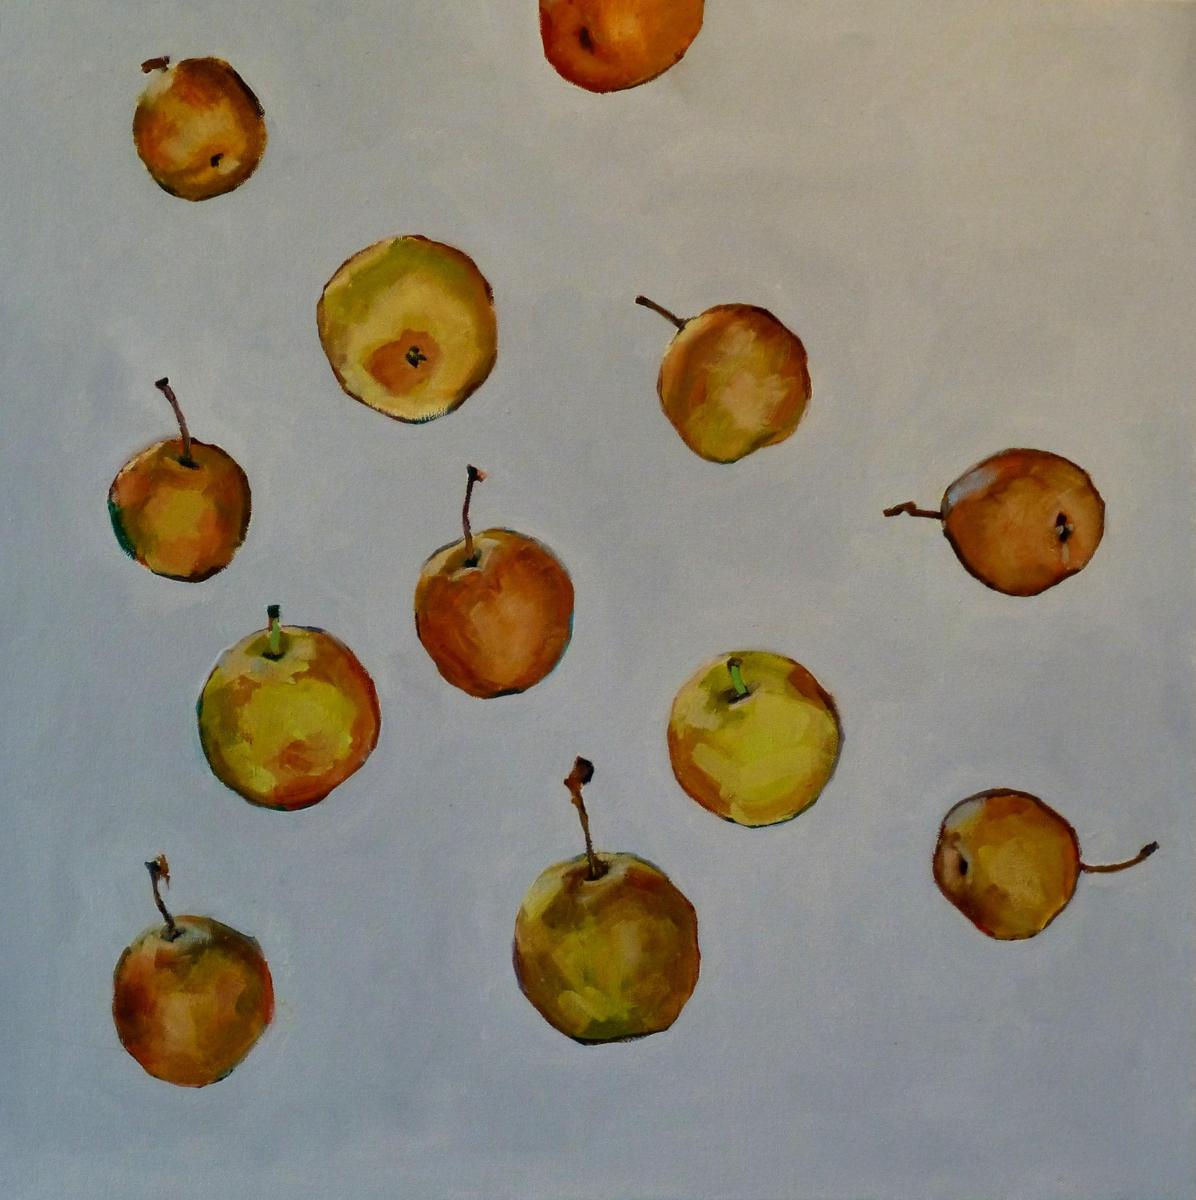 Falling Pears (large view)